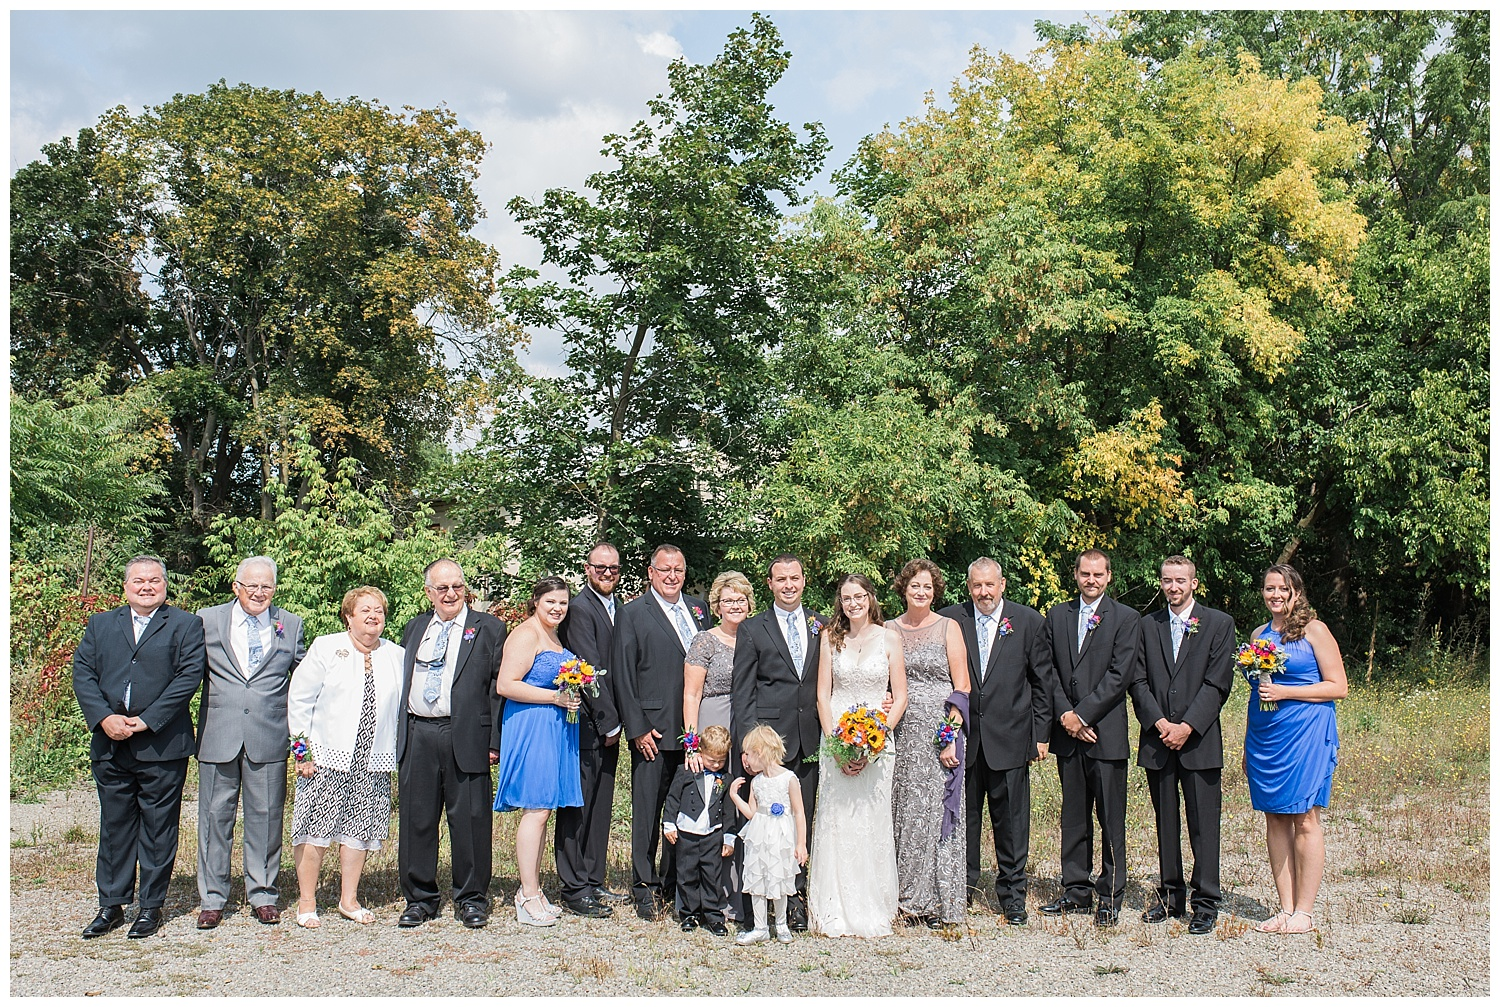 Chris and Leanne Hindle - Nugget Hill - Wayland NY - Lass and Beau-538_Buffalo wedding photography.jpg